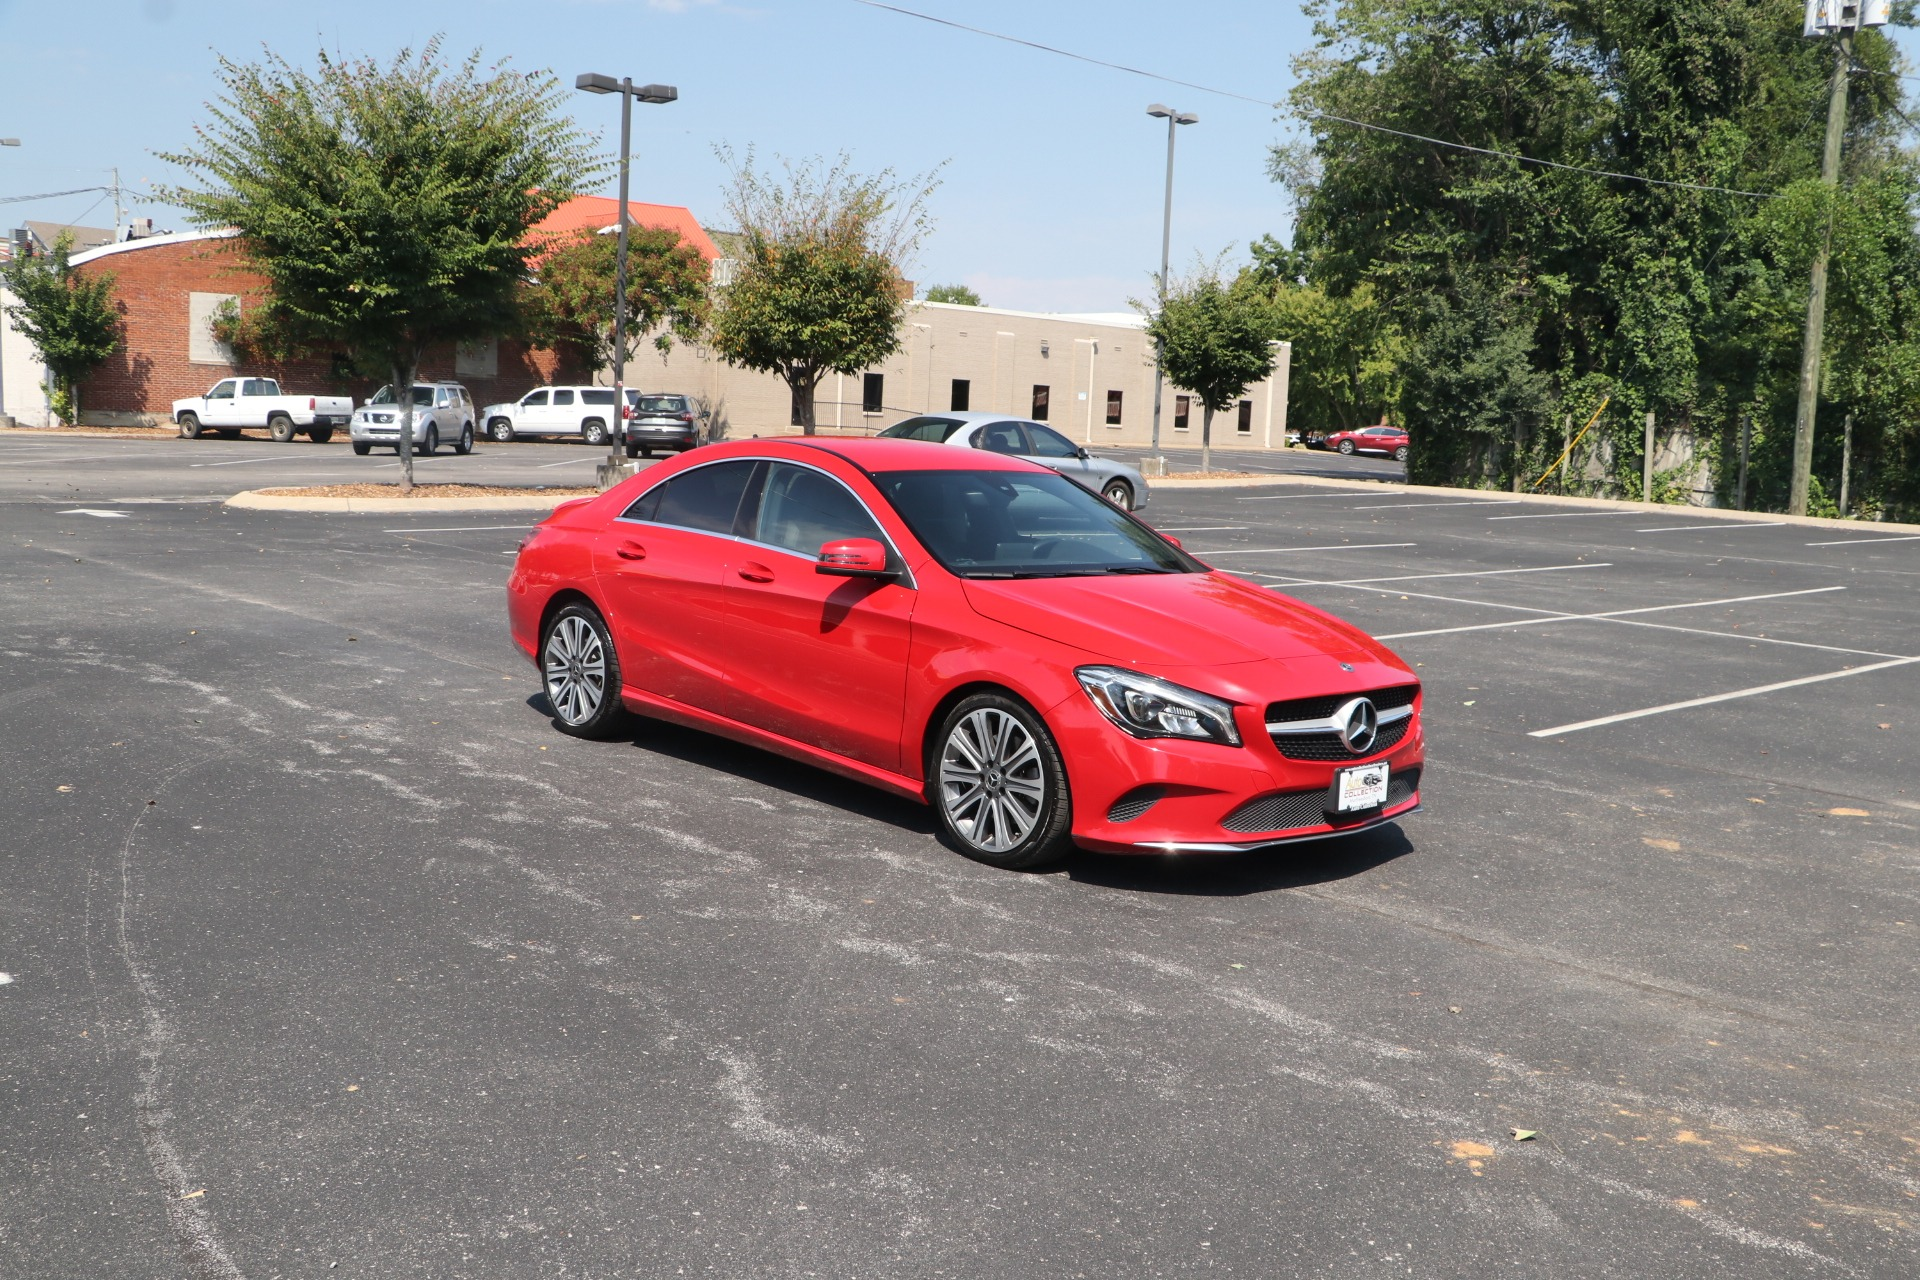 Used 2018 Mercedes-Benz CLA 250 COUPE BLIND SPOT ASSIST PKG W/NAV for sale $28,500 at Auto Collection in Murfreesboro TN 37130 1